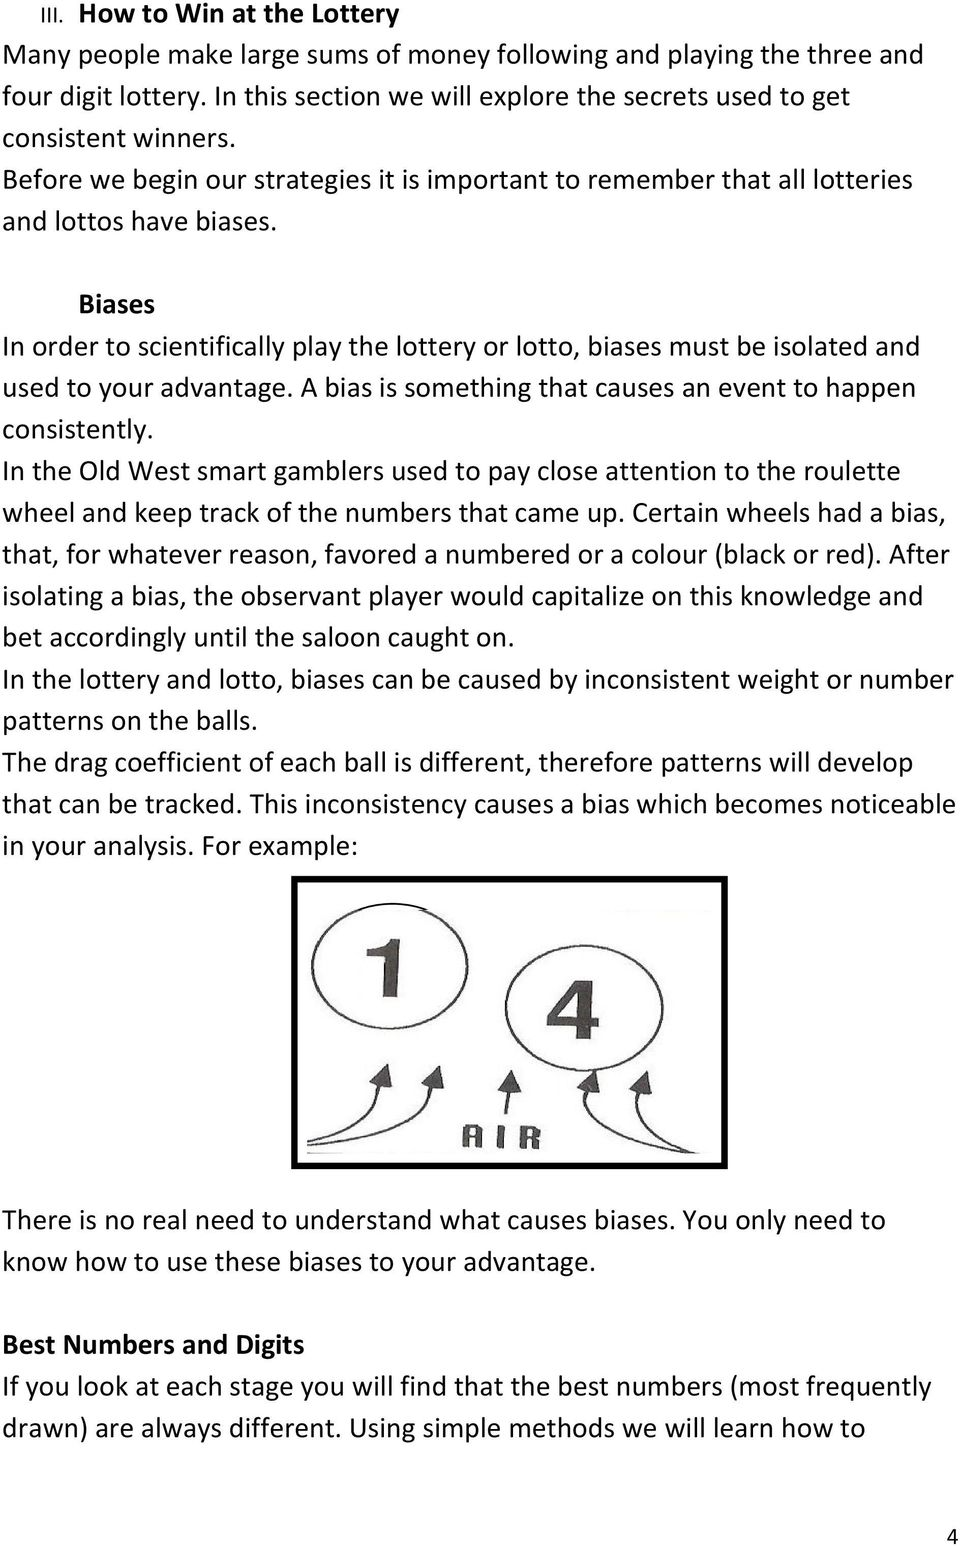 Biases In order to scientifically play the lottery or lotto, biases must be isolated and used to your advantage. A bias is something that causes an event to happen consistently.